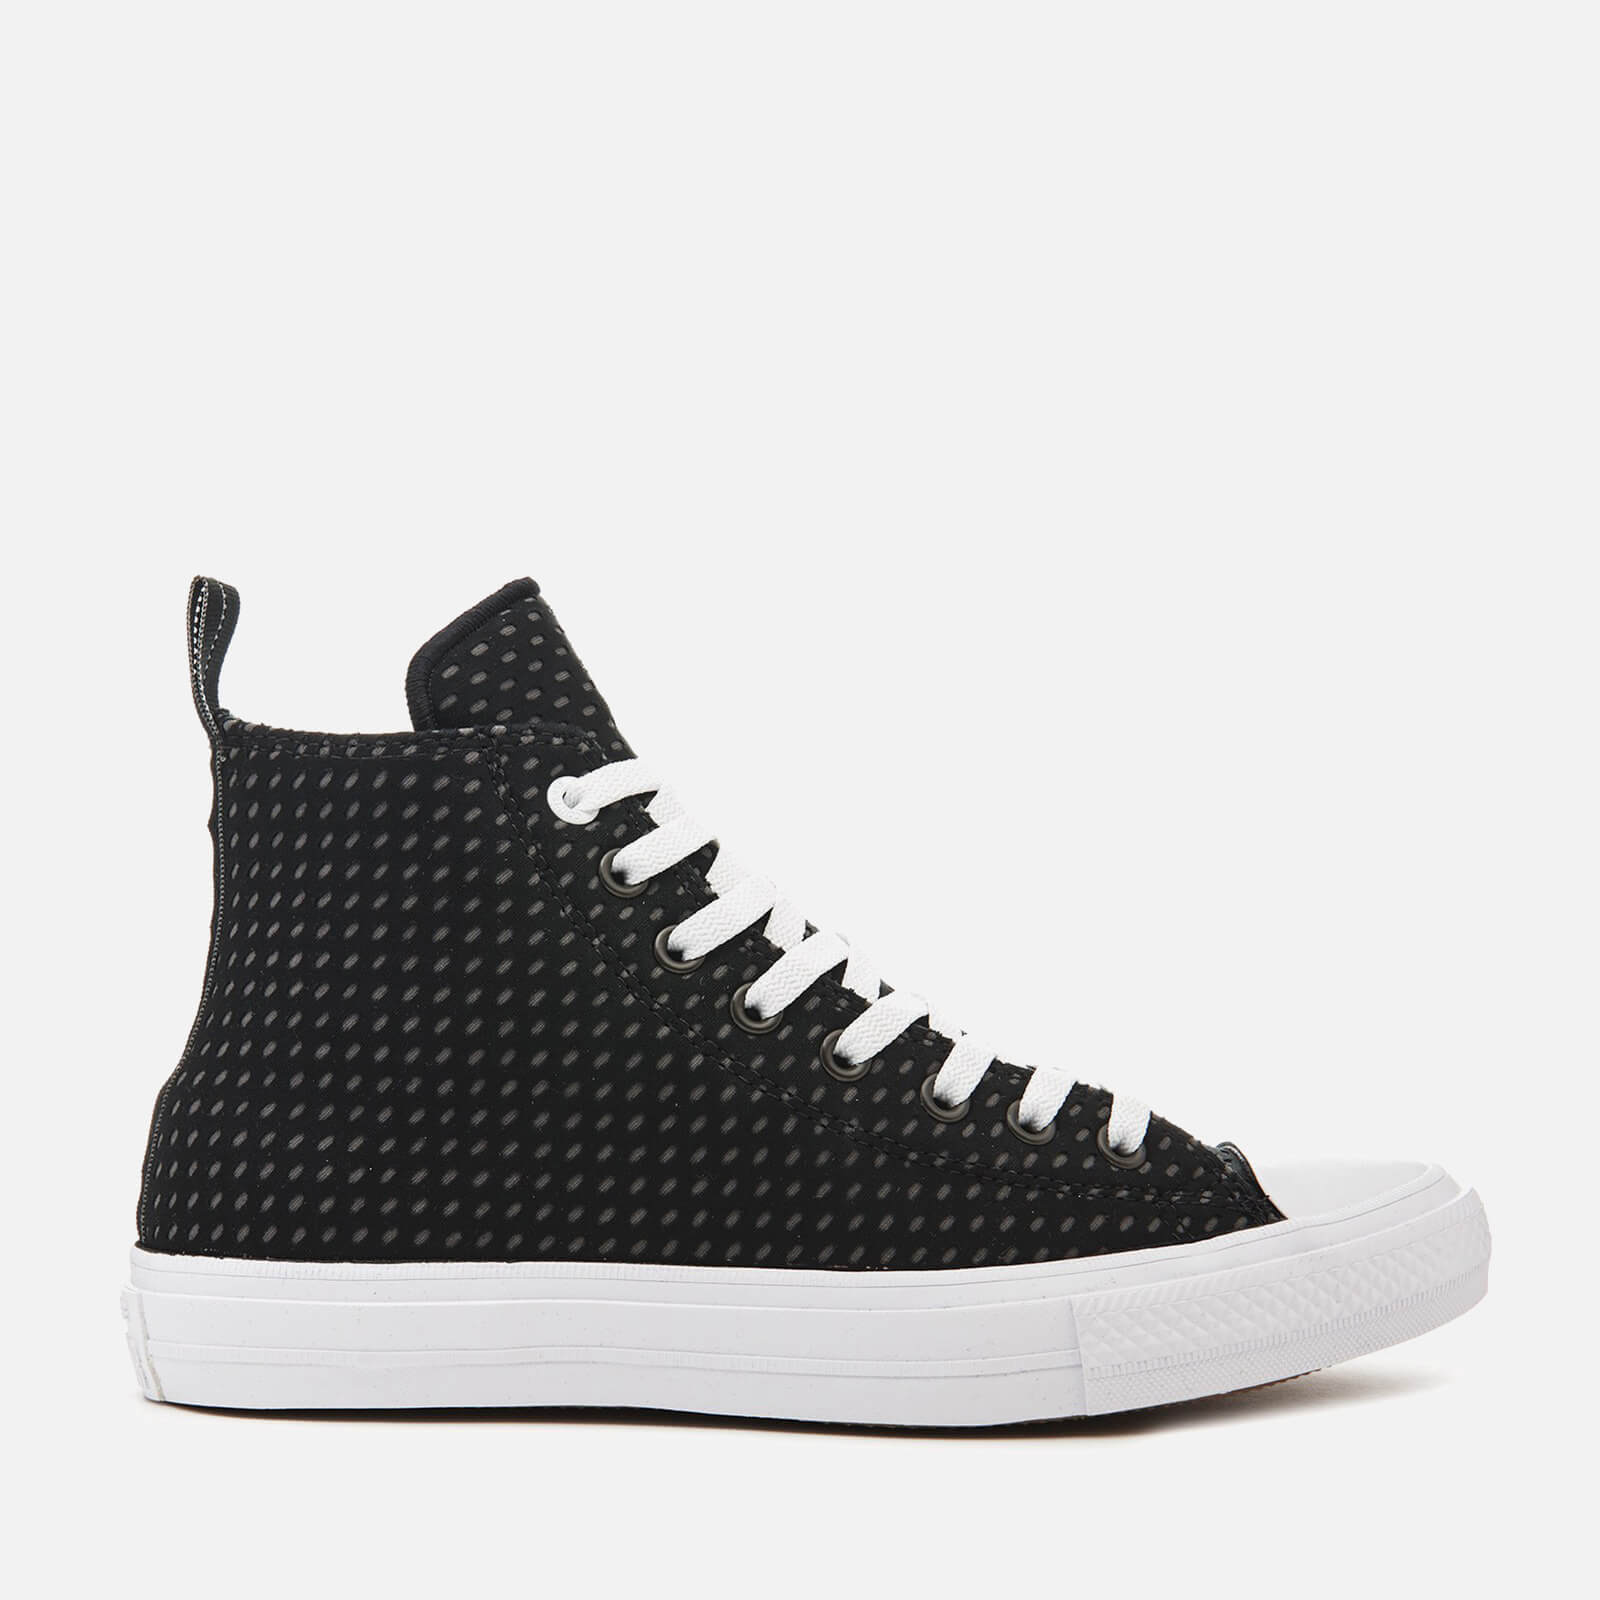 8da321ea7662 Converse Men s Chuck Taylor All Star II Hi-Top Trainers - Black Thunder  White - Free UK Delivery over £50